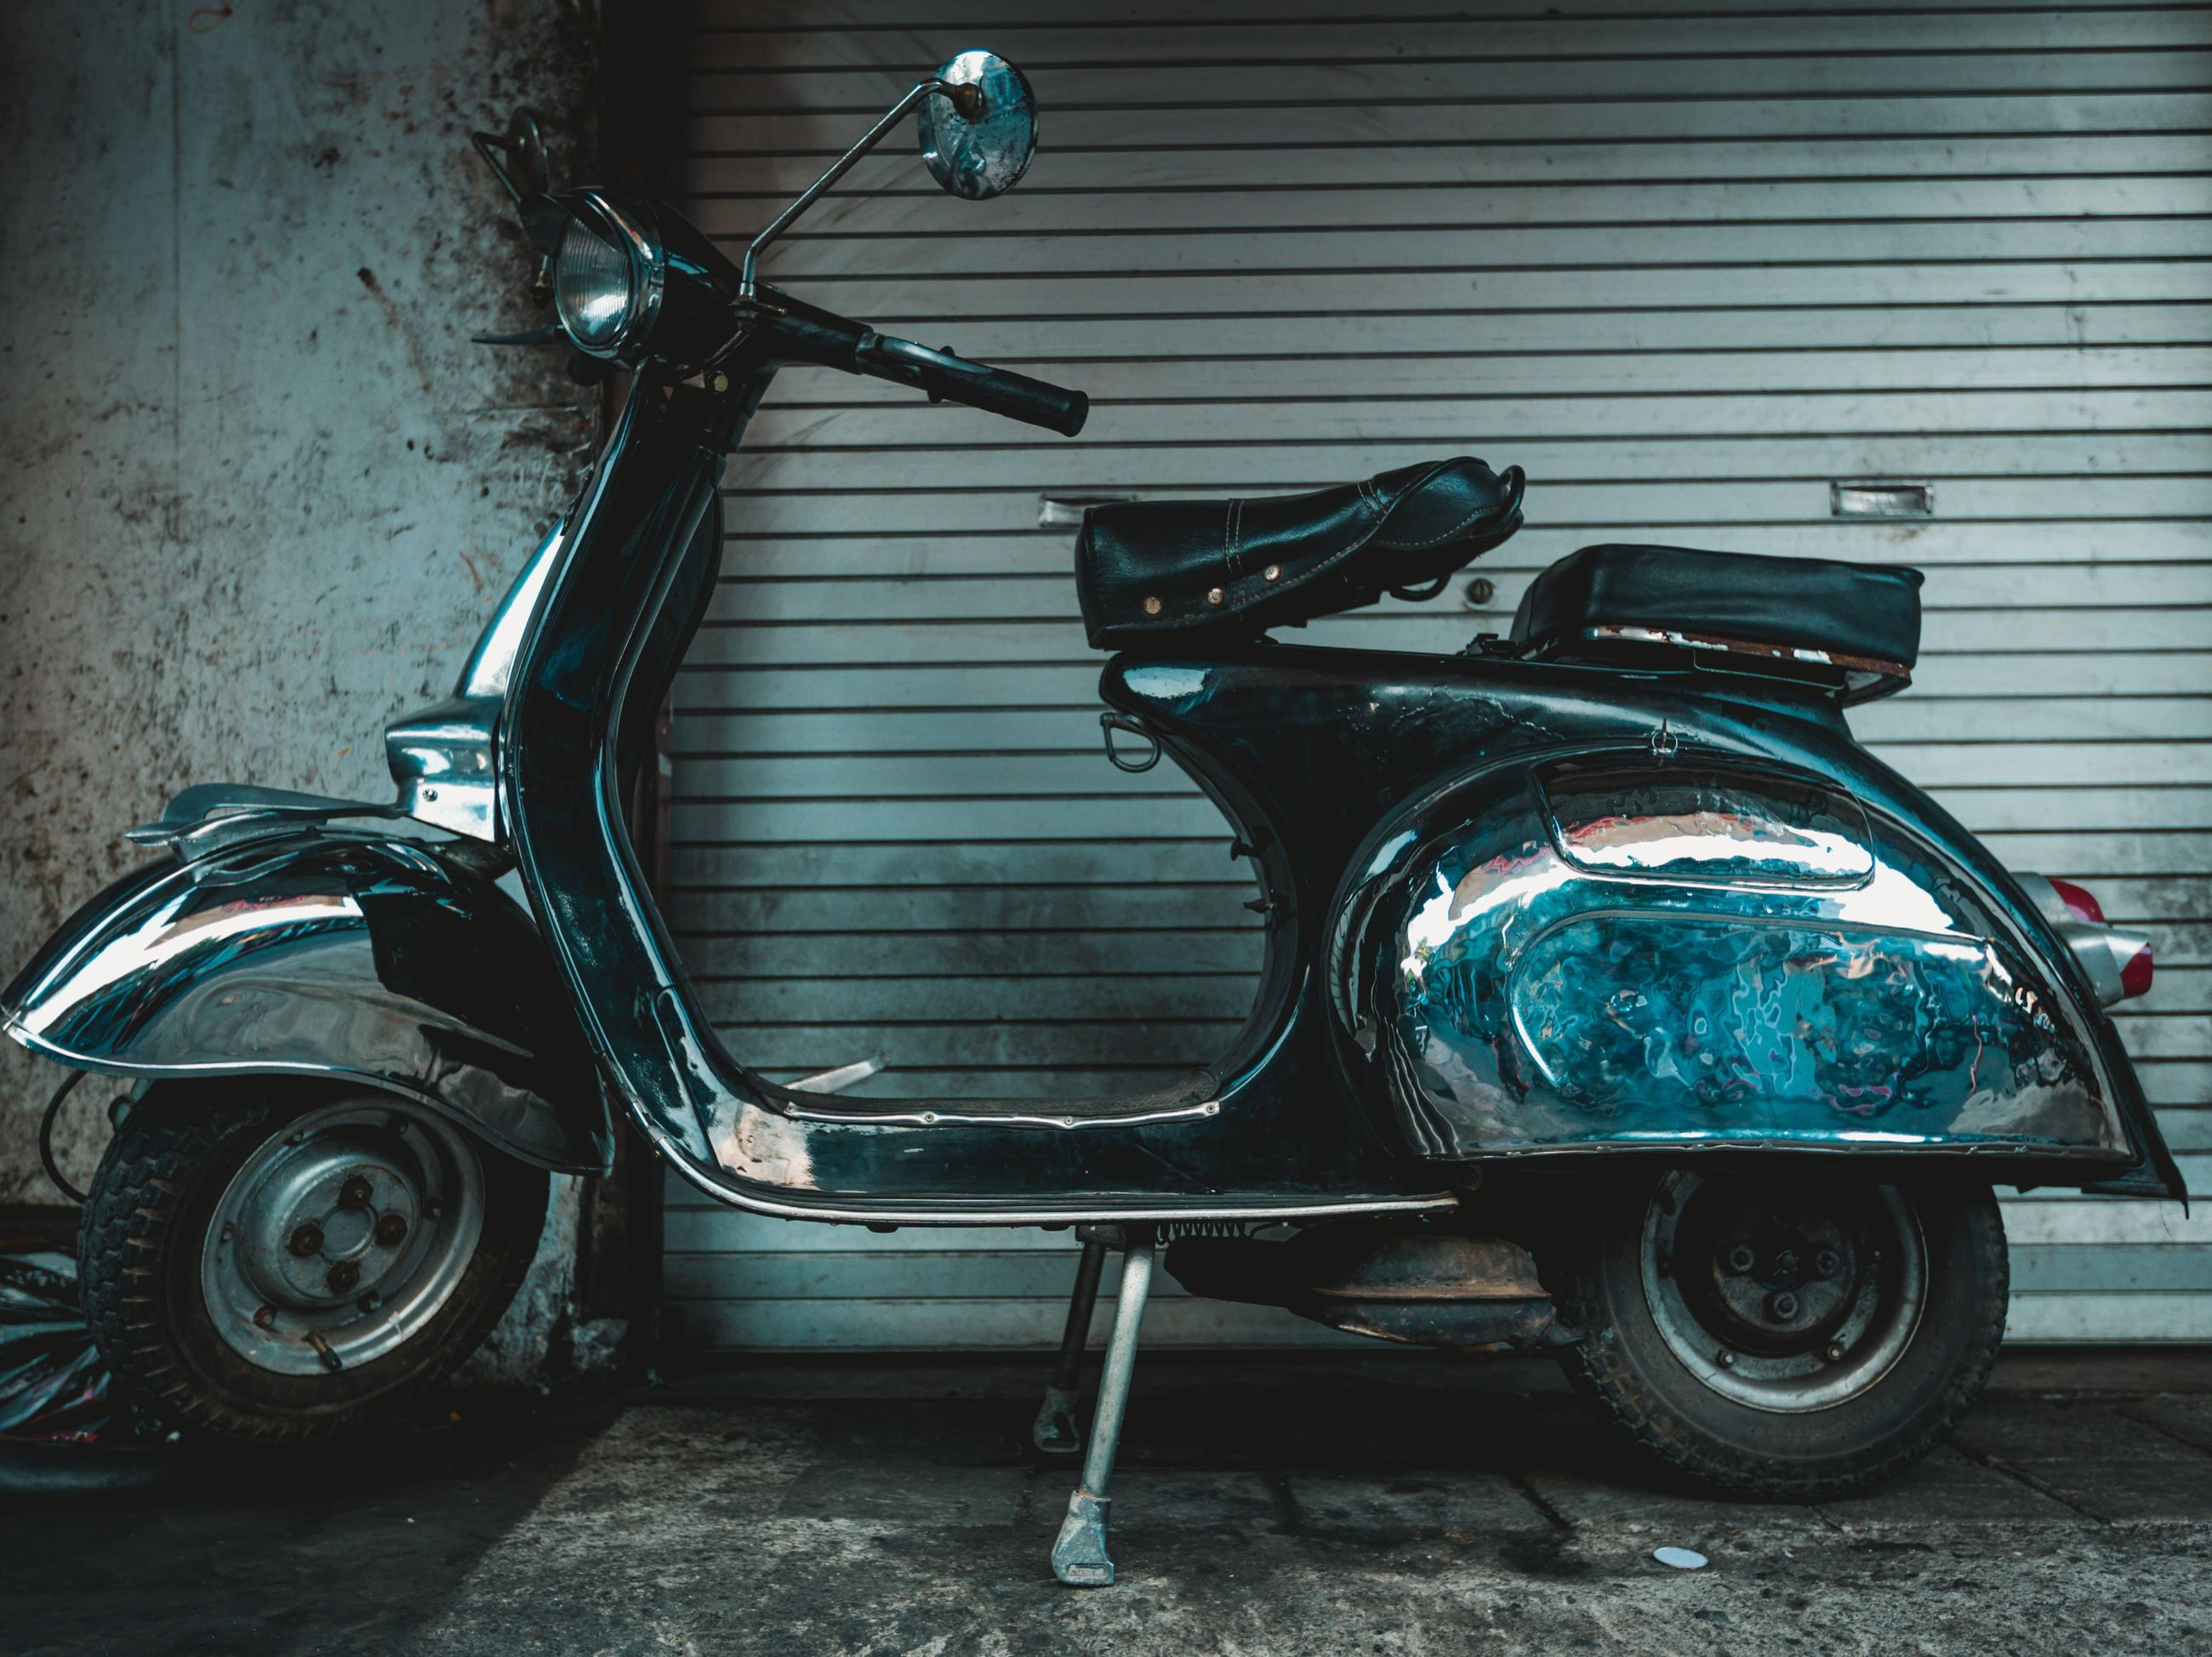 mode of transportation, transportation, land vehicle, stationary, retro styled, no people, metal, old, motor vehicle, scooter, headlight, vintage car, day, car, architecture, vintage, wall - building feature, abandoned, blue, outdoors, garage, wheel, chrome